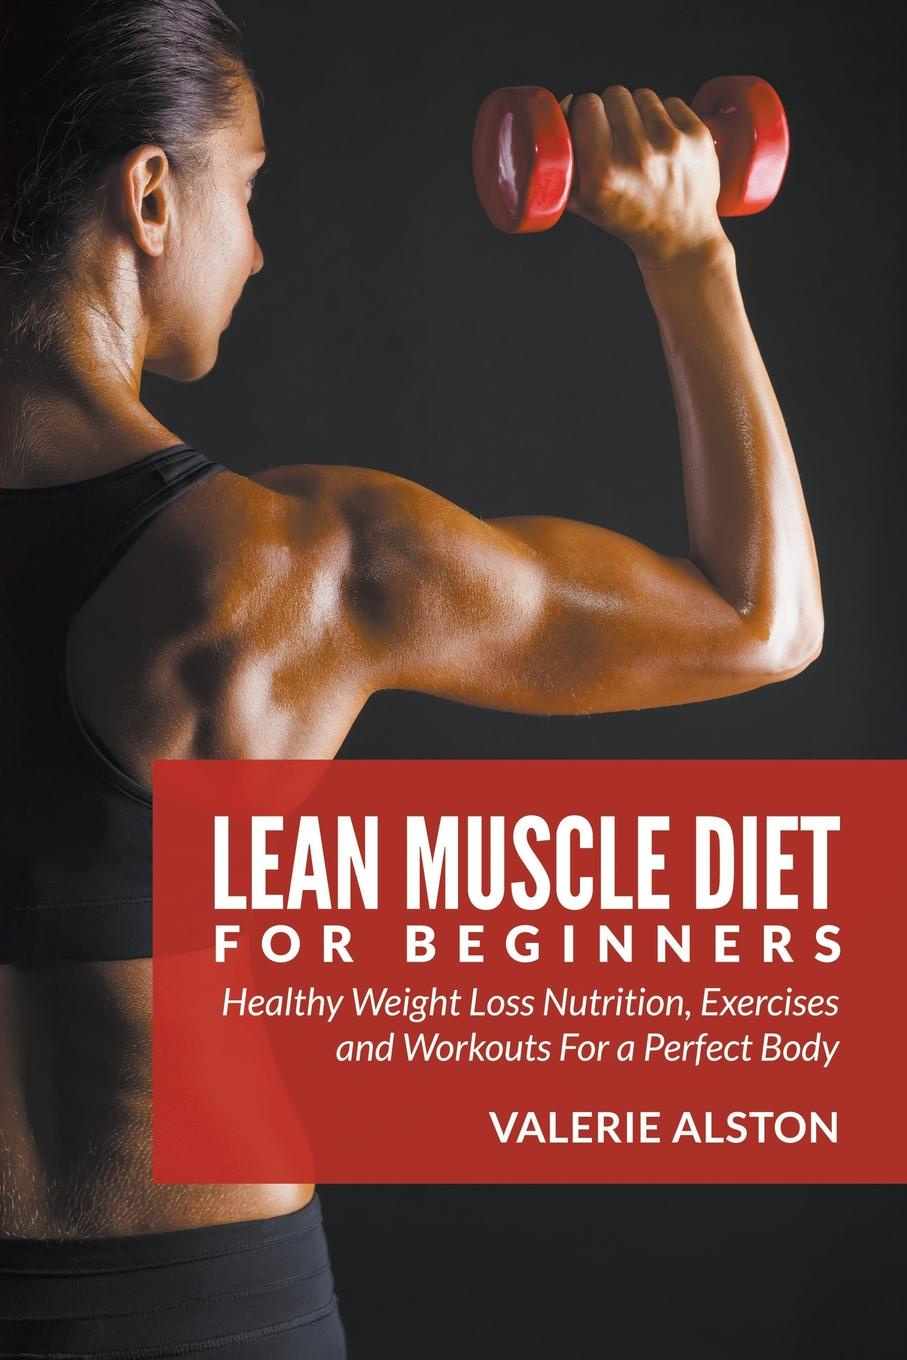 Valerie Alston Lean Muscle Diet For Beginners. Healthy Weight Loss Nutrition, Exercises and Workouts a Perfect Body